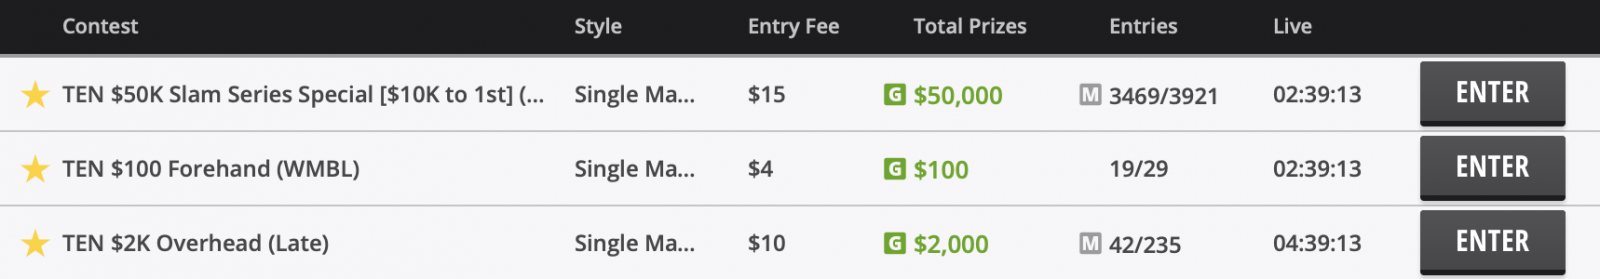 Draftkings contests